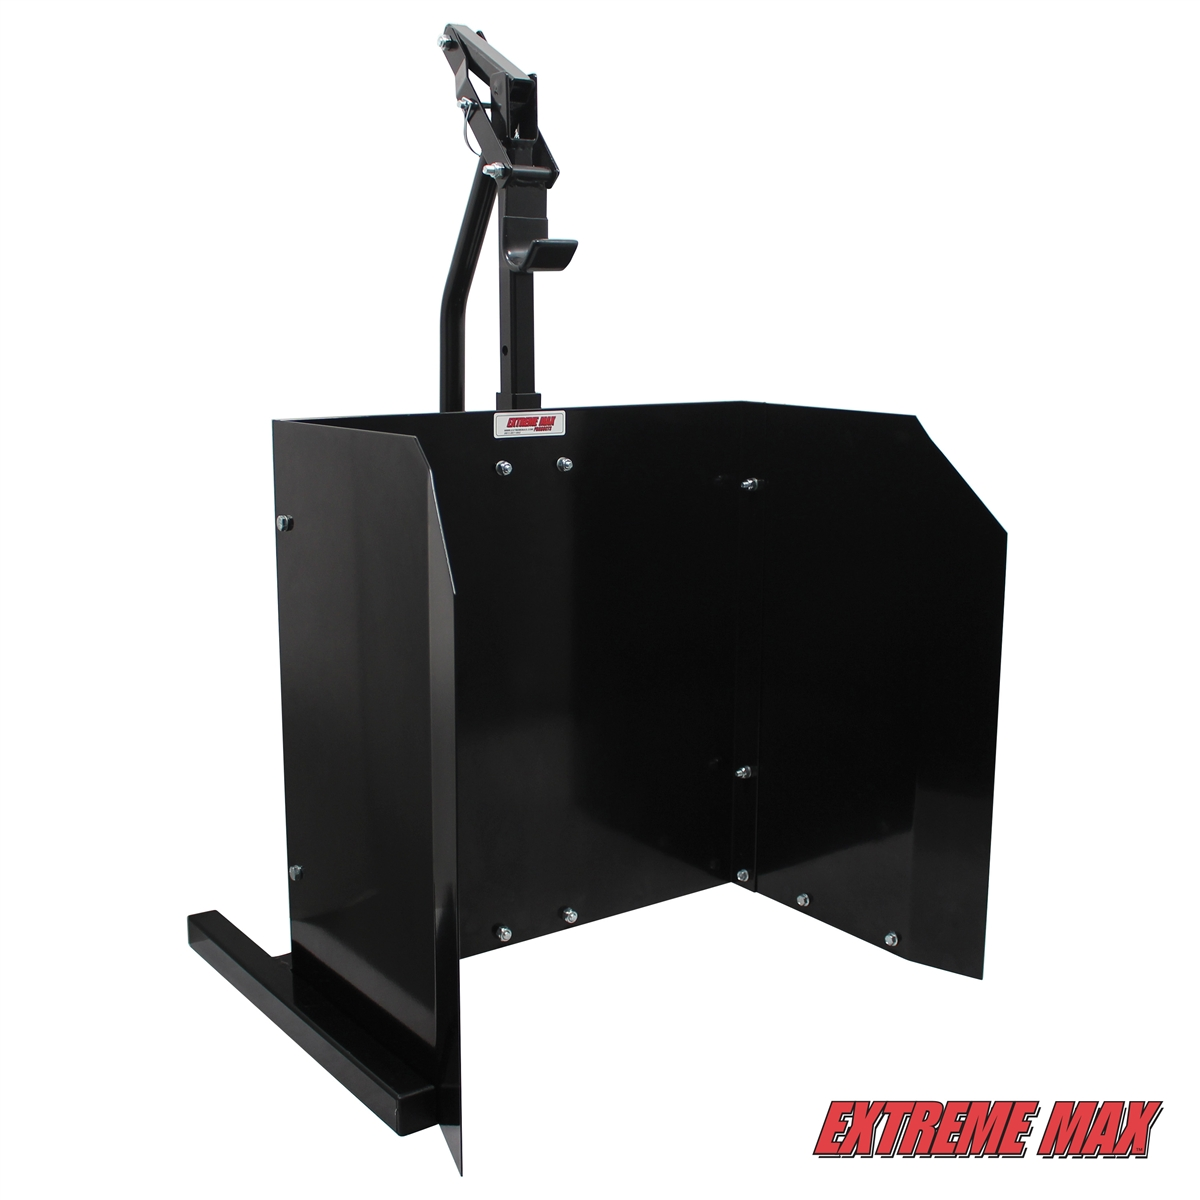 Extreme Max 5001 6026 Lever Lift Stand With Warm Up Shield